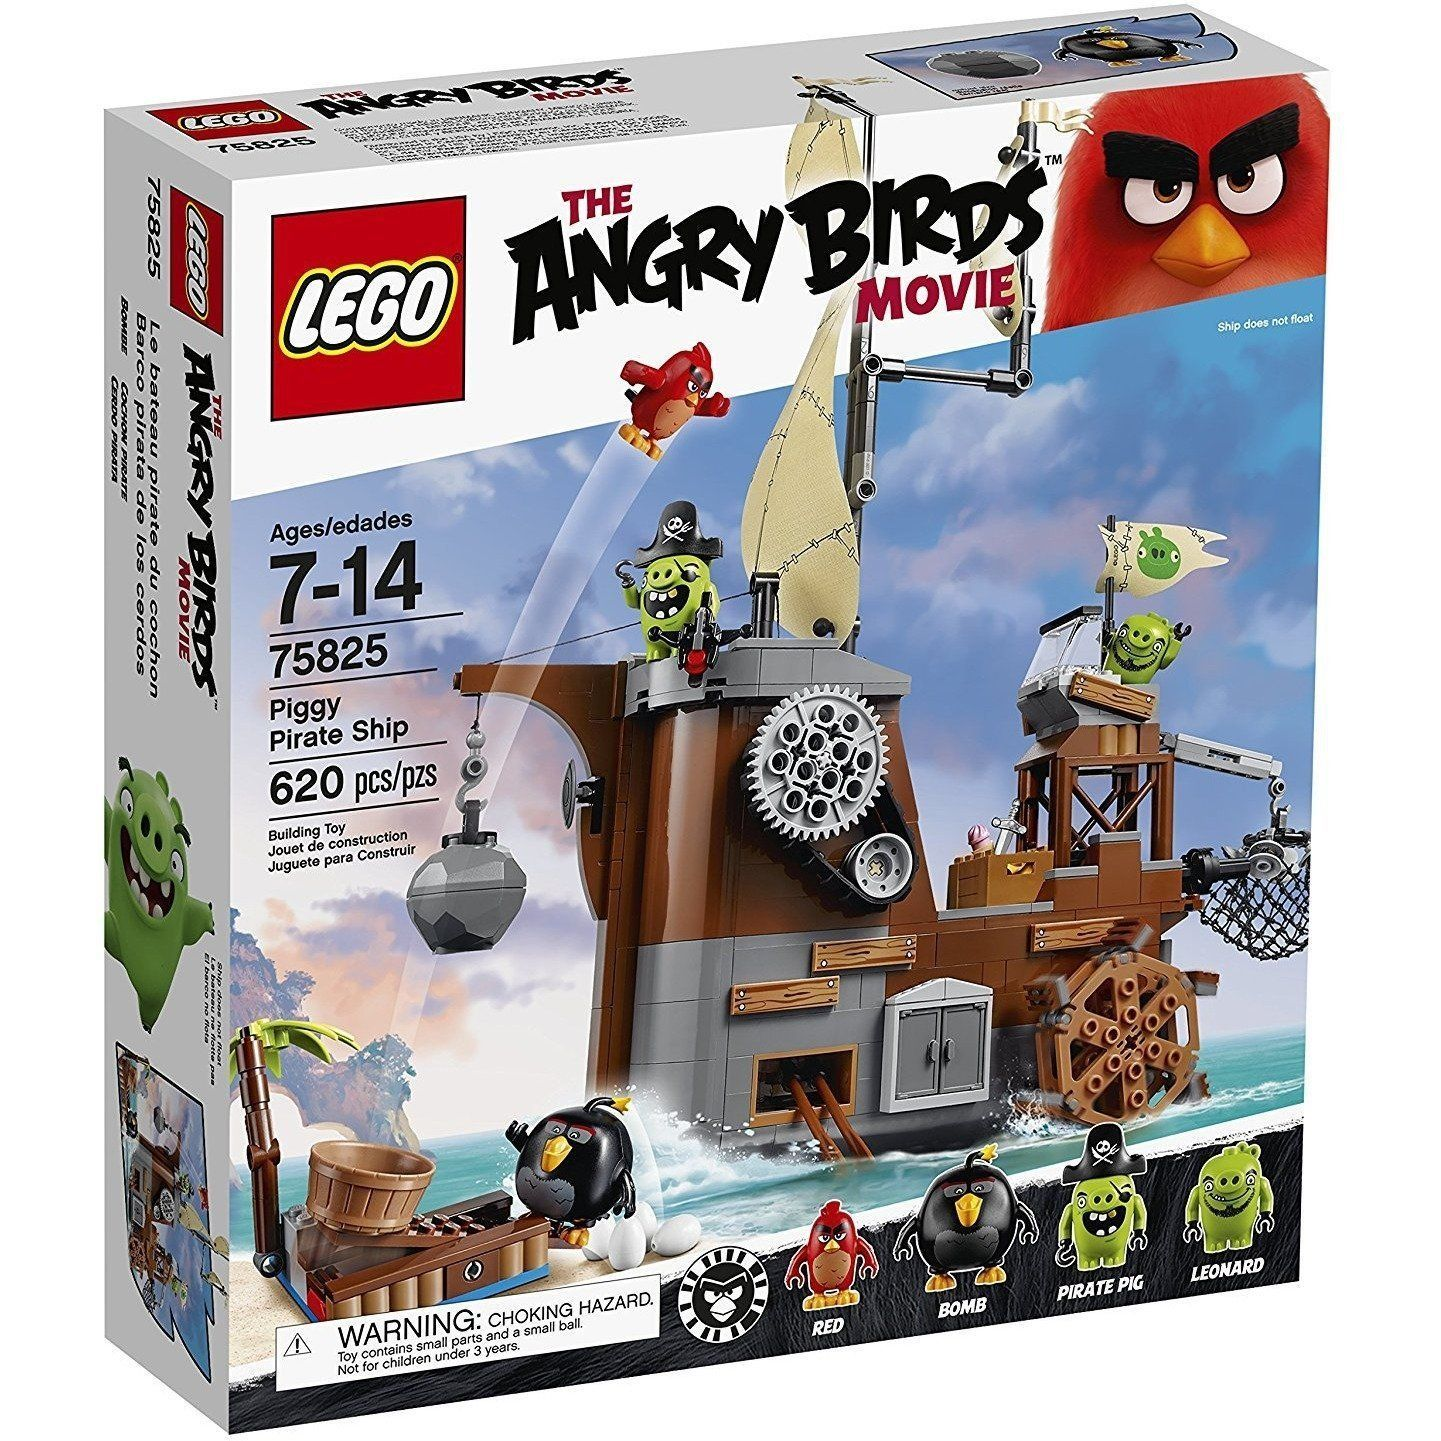 LEGO THE ANGRY BIRDS MOVIE BEST PRICE FREE GIFT PIGGY 1 FIGURE NEW